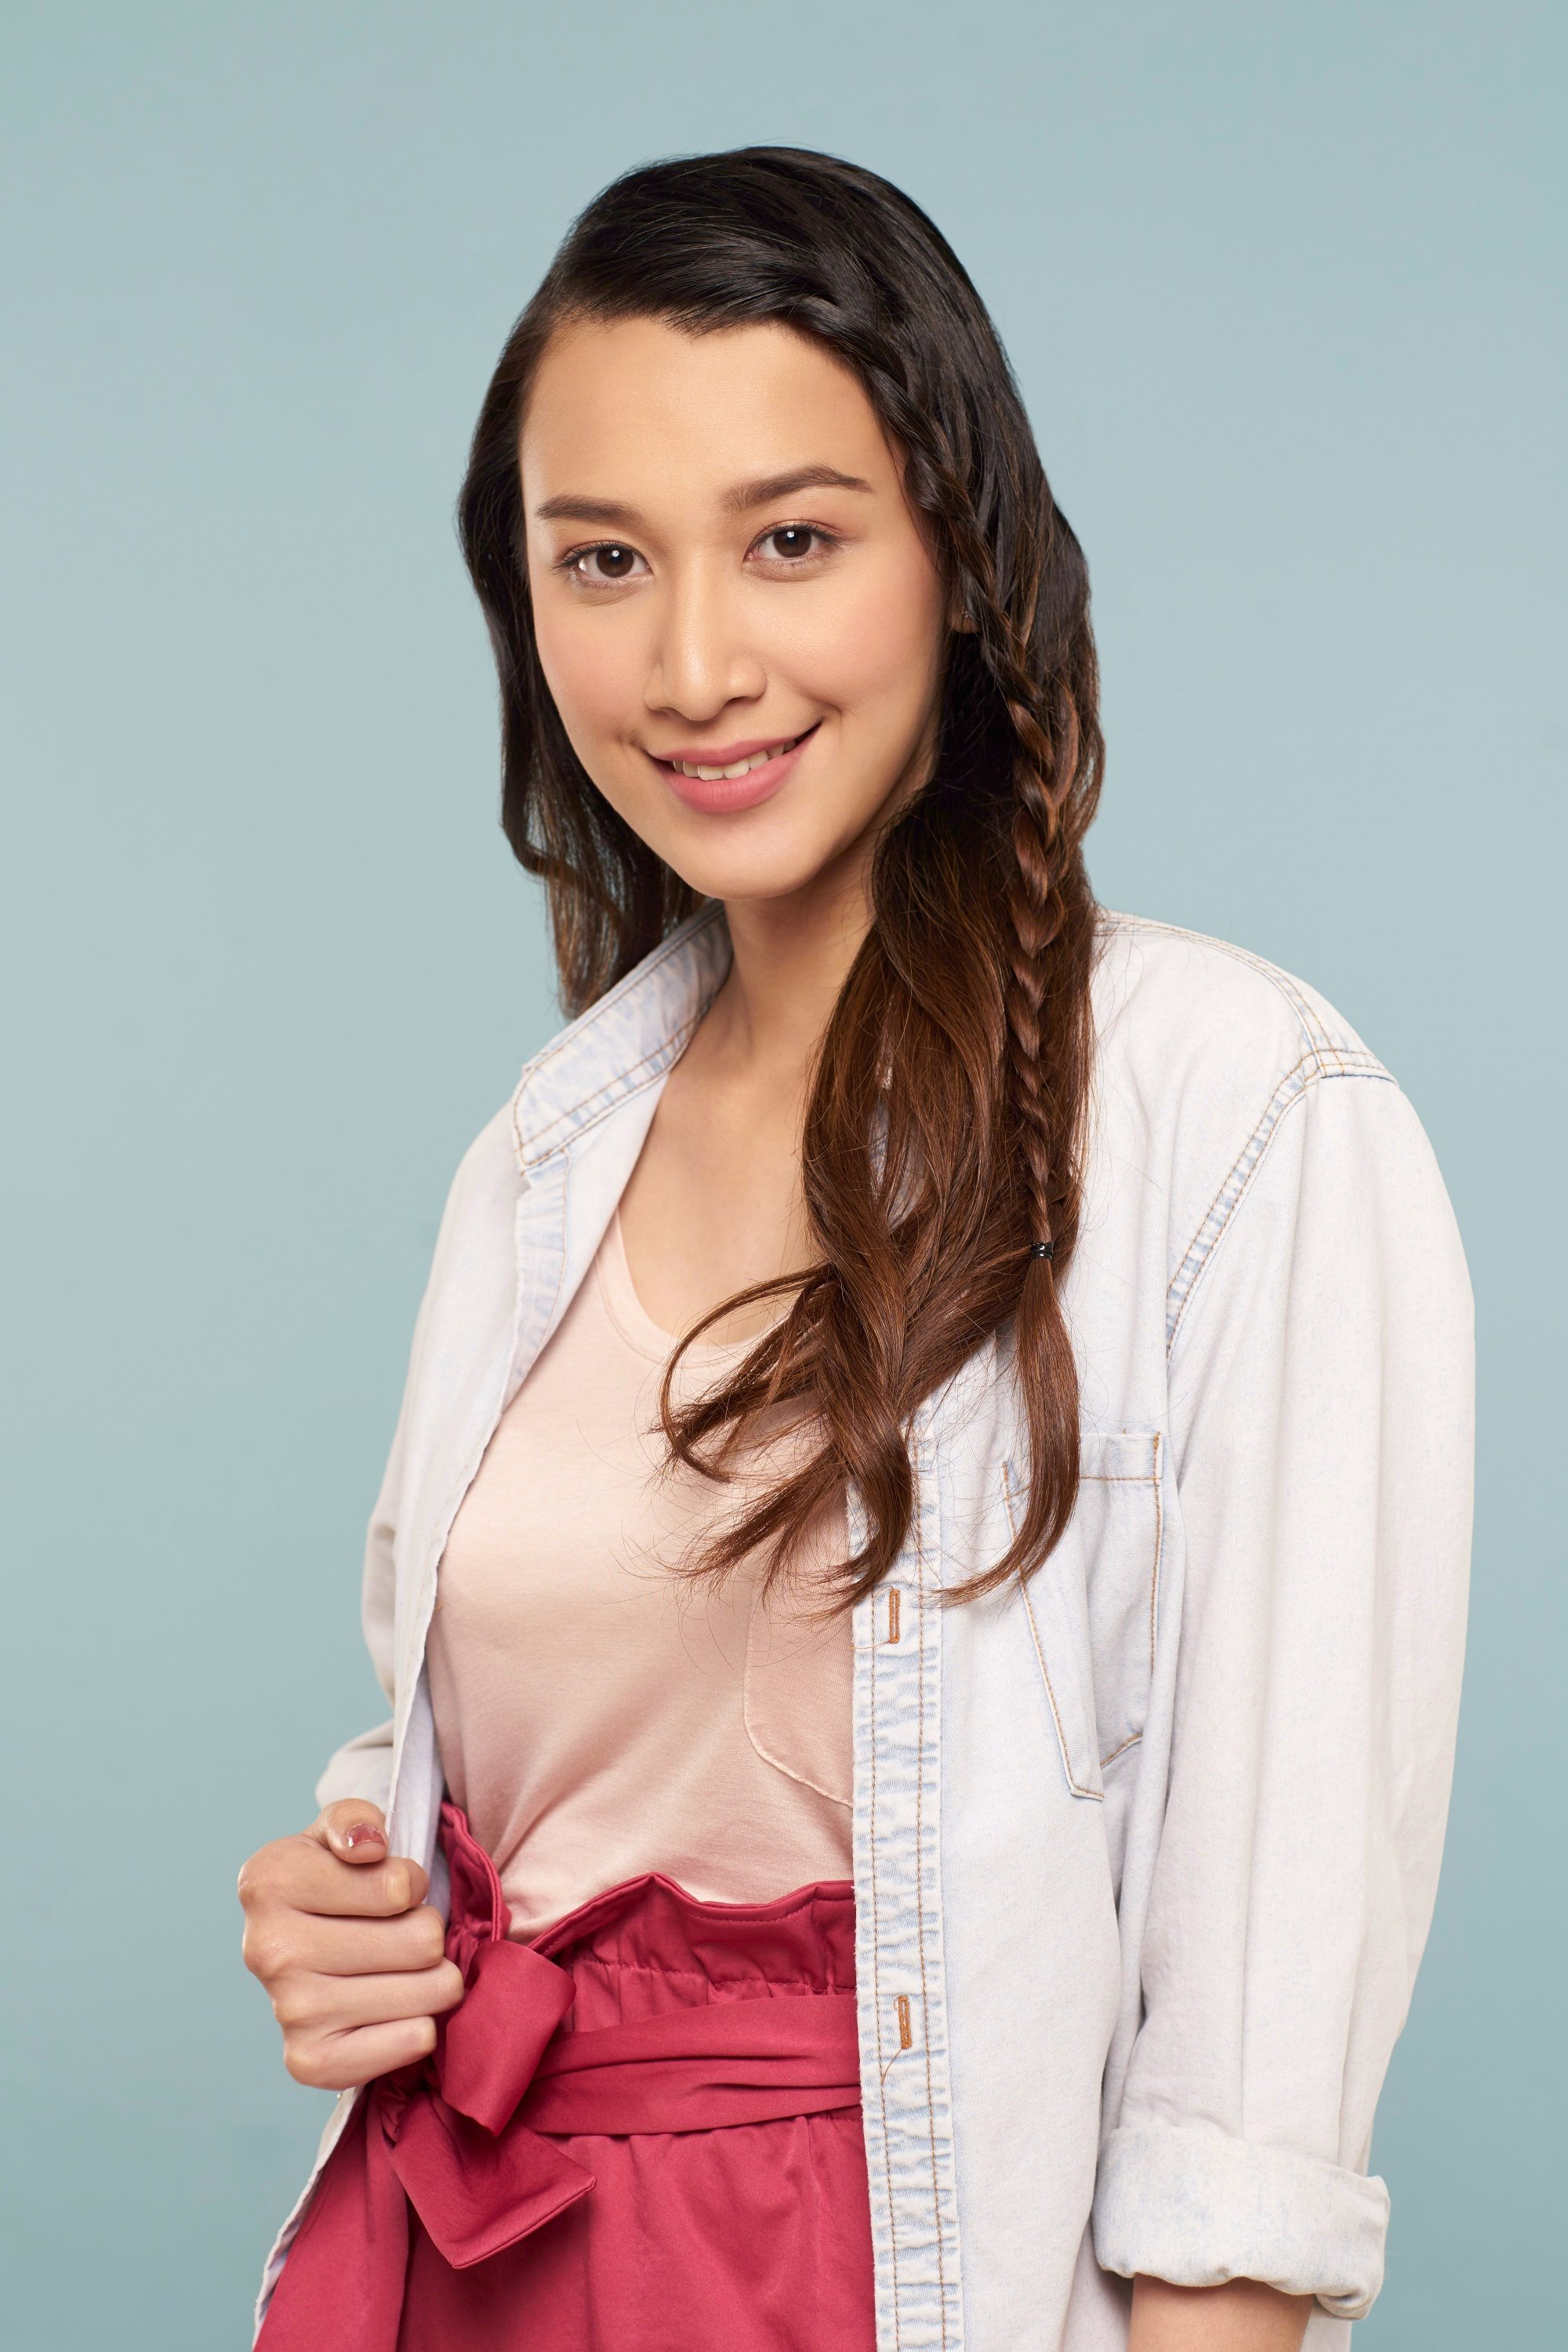 Casual hairstyles: Asian woman with long dark brown hair with lace braid wearing a white jacket and light pink shirt